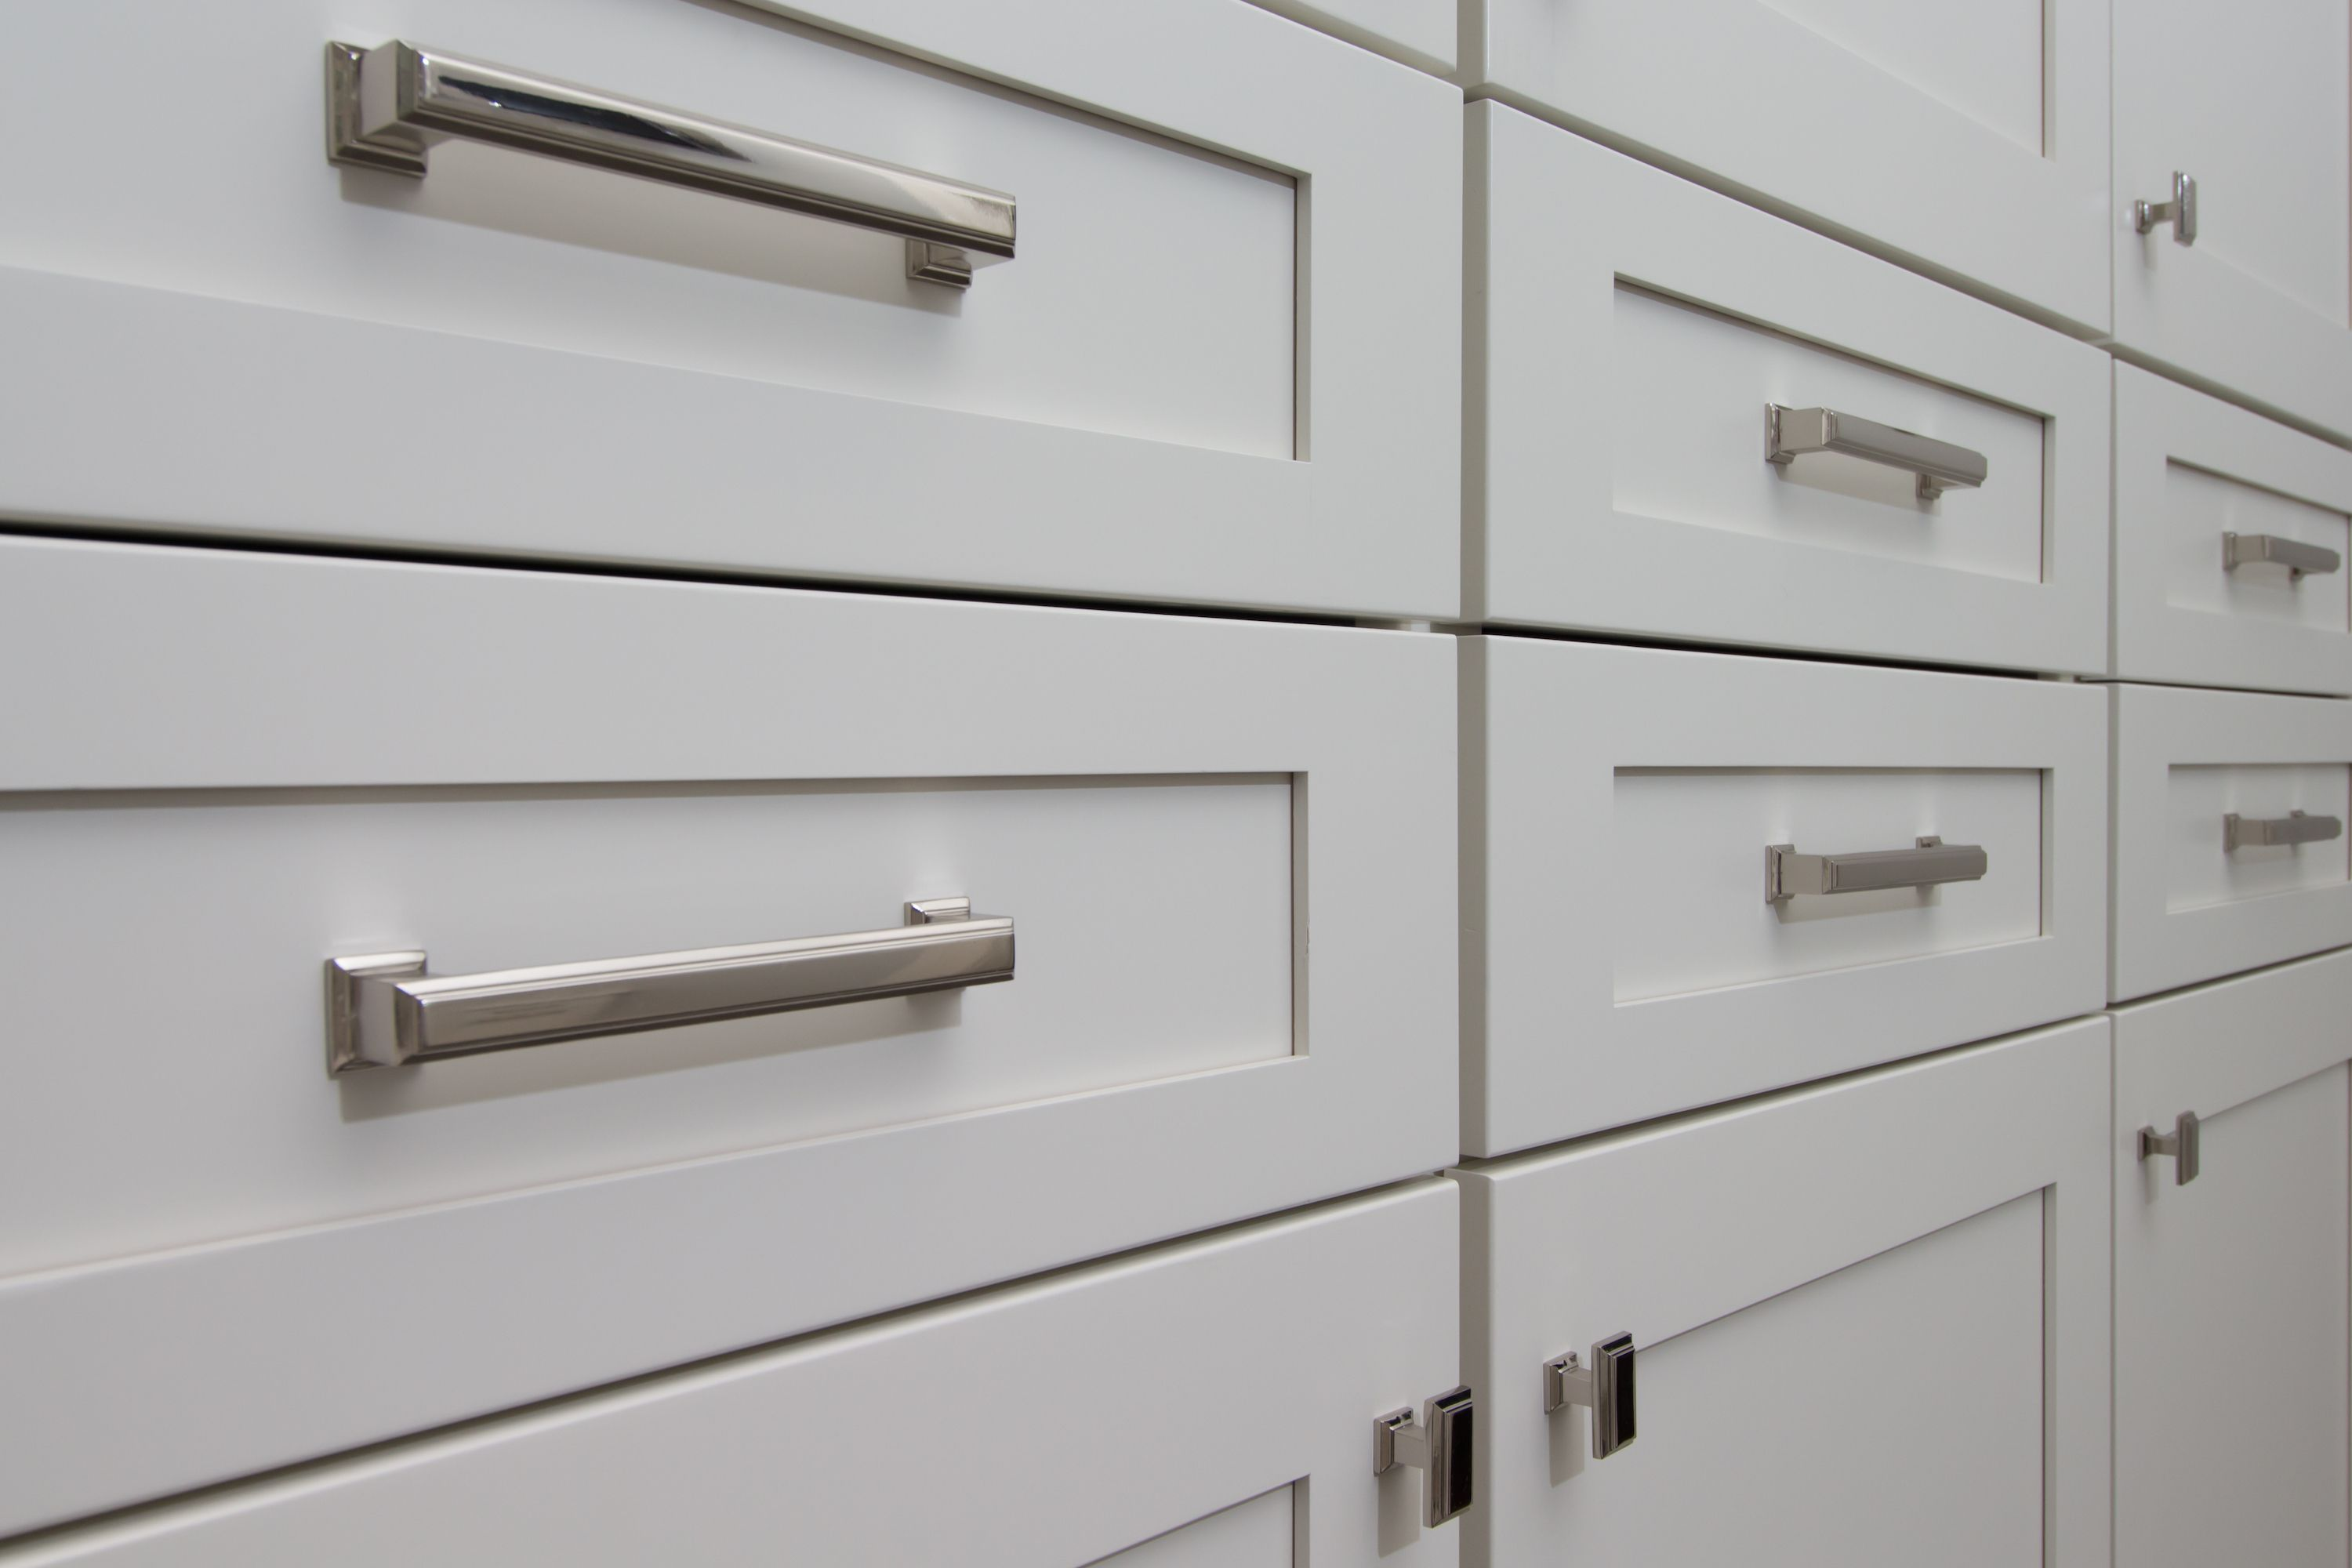 Off White Cabinets With Sutton Hardware Pulls Off White Cabinets Hardware Pulls White Cabinets